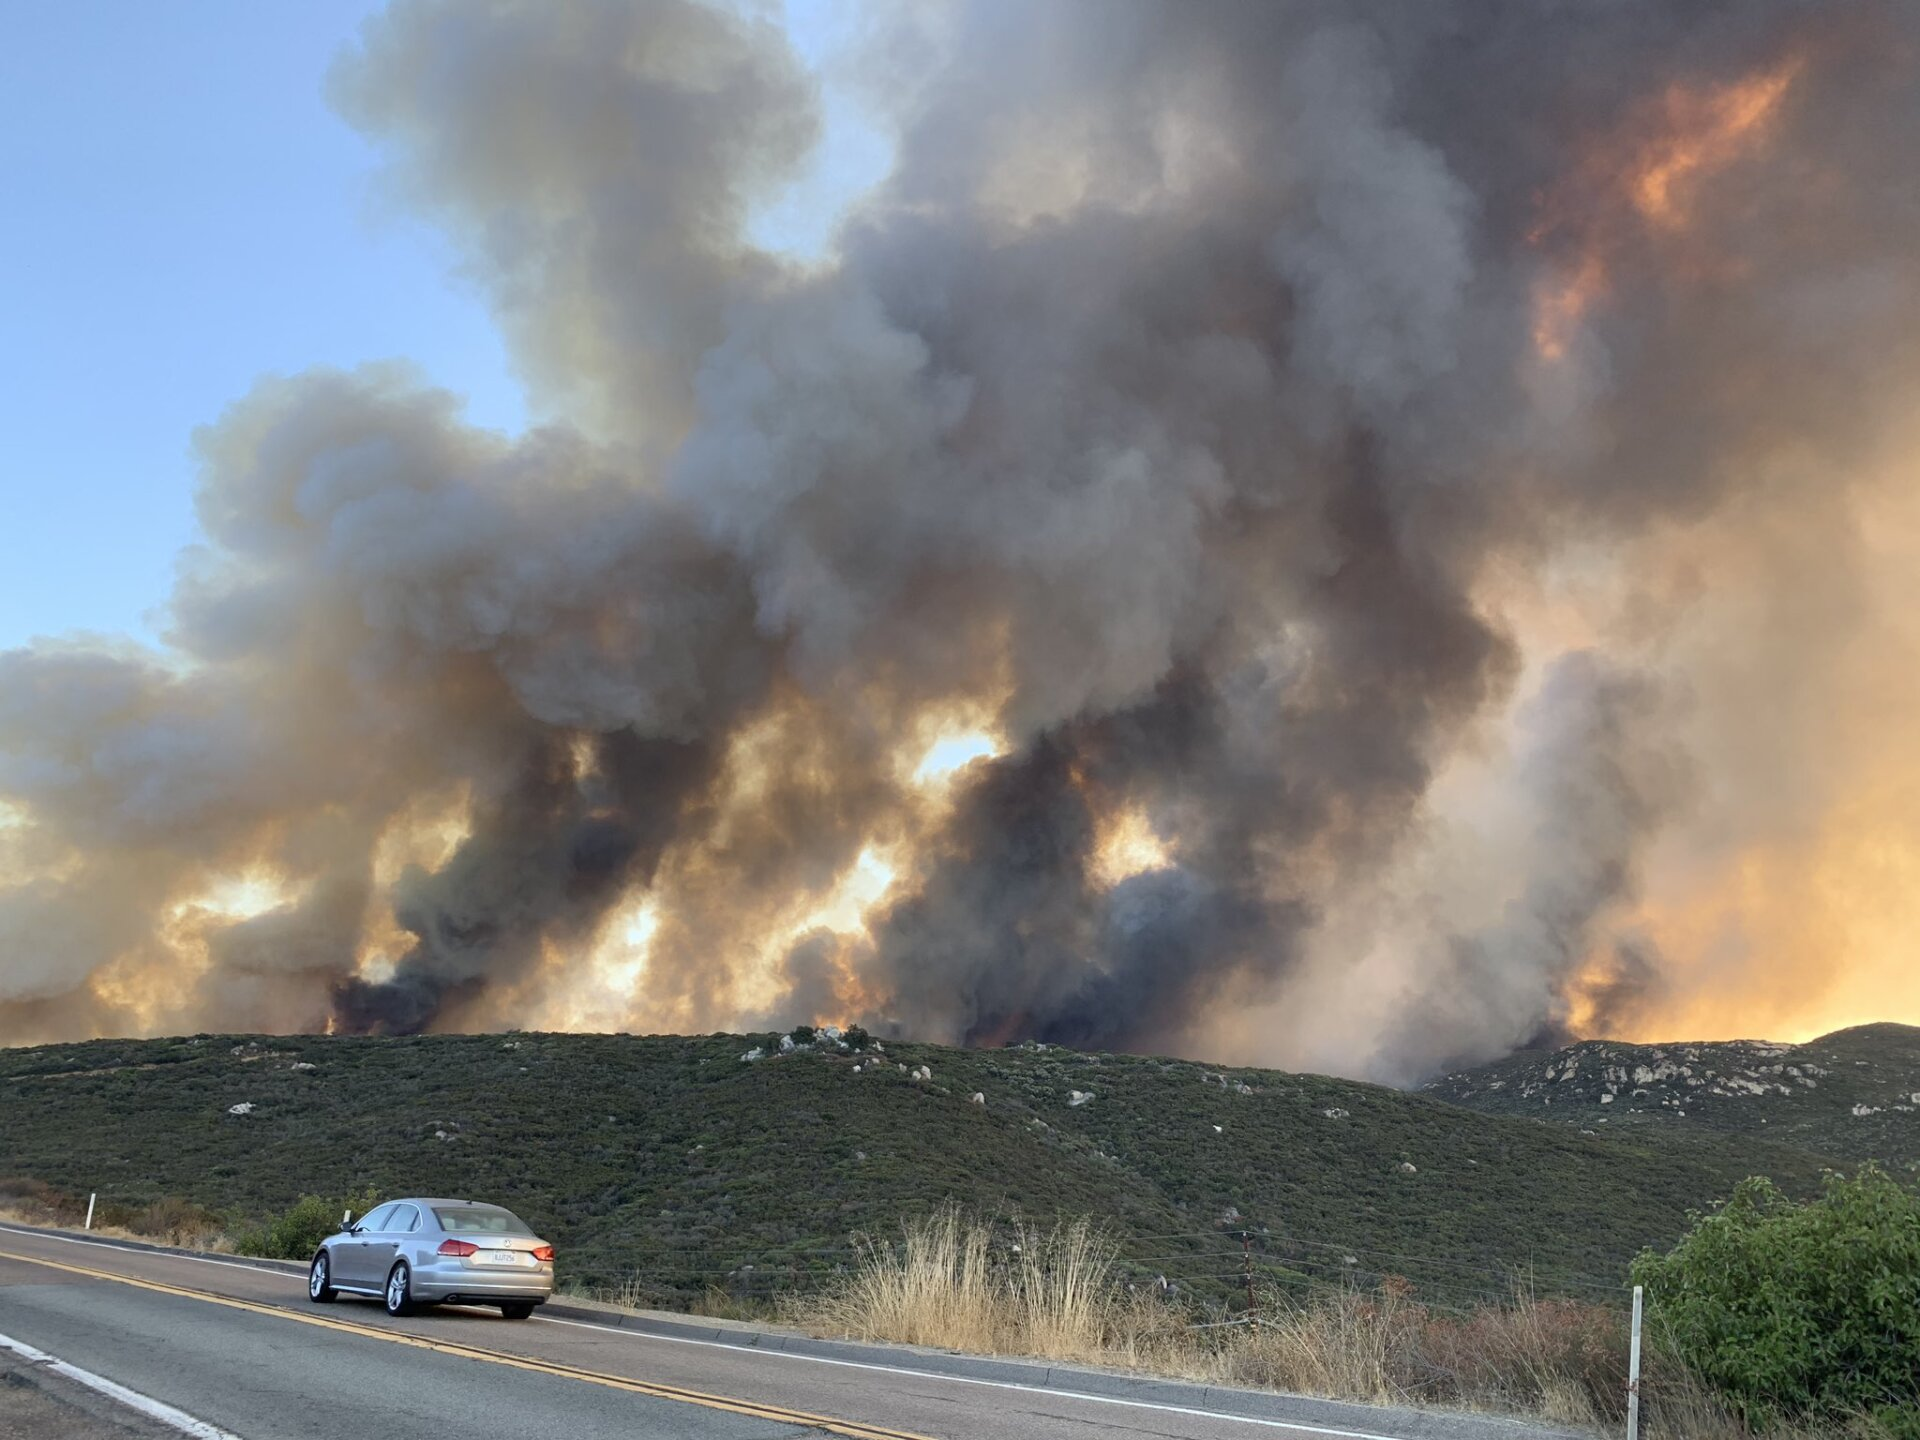 valley fire_japatul valley_9_5_2020_1.jpeg